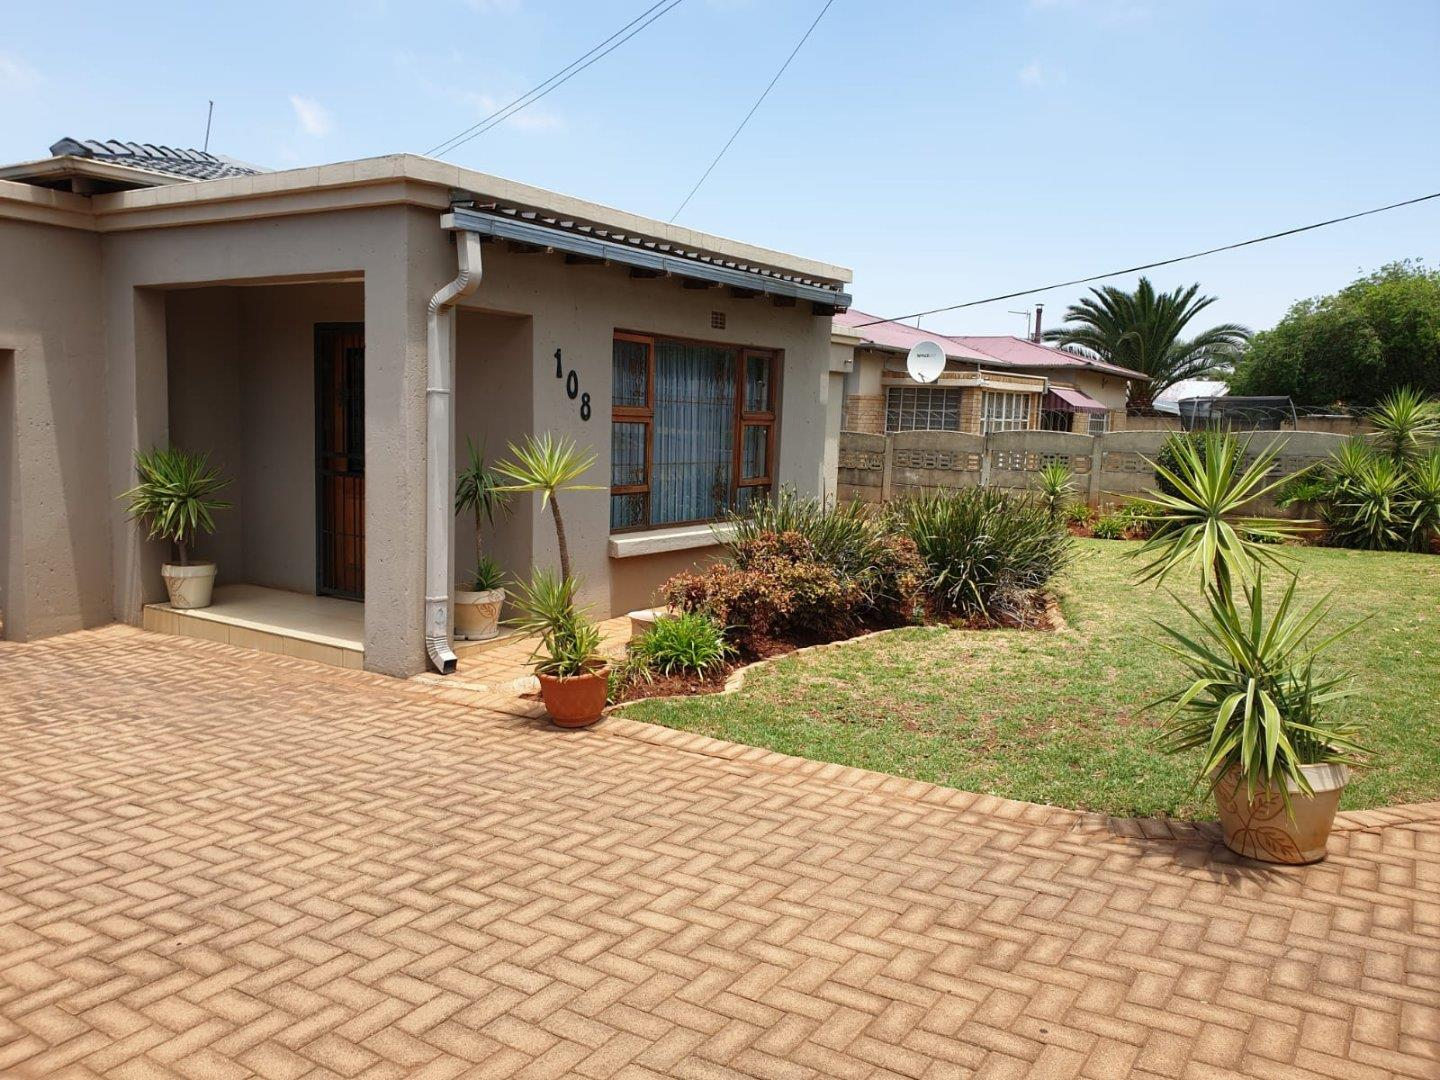 4 Bedroom House for Sale in Florida, Roodepoort - Gauteng